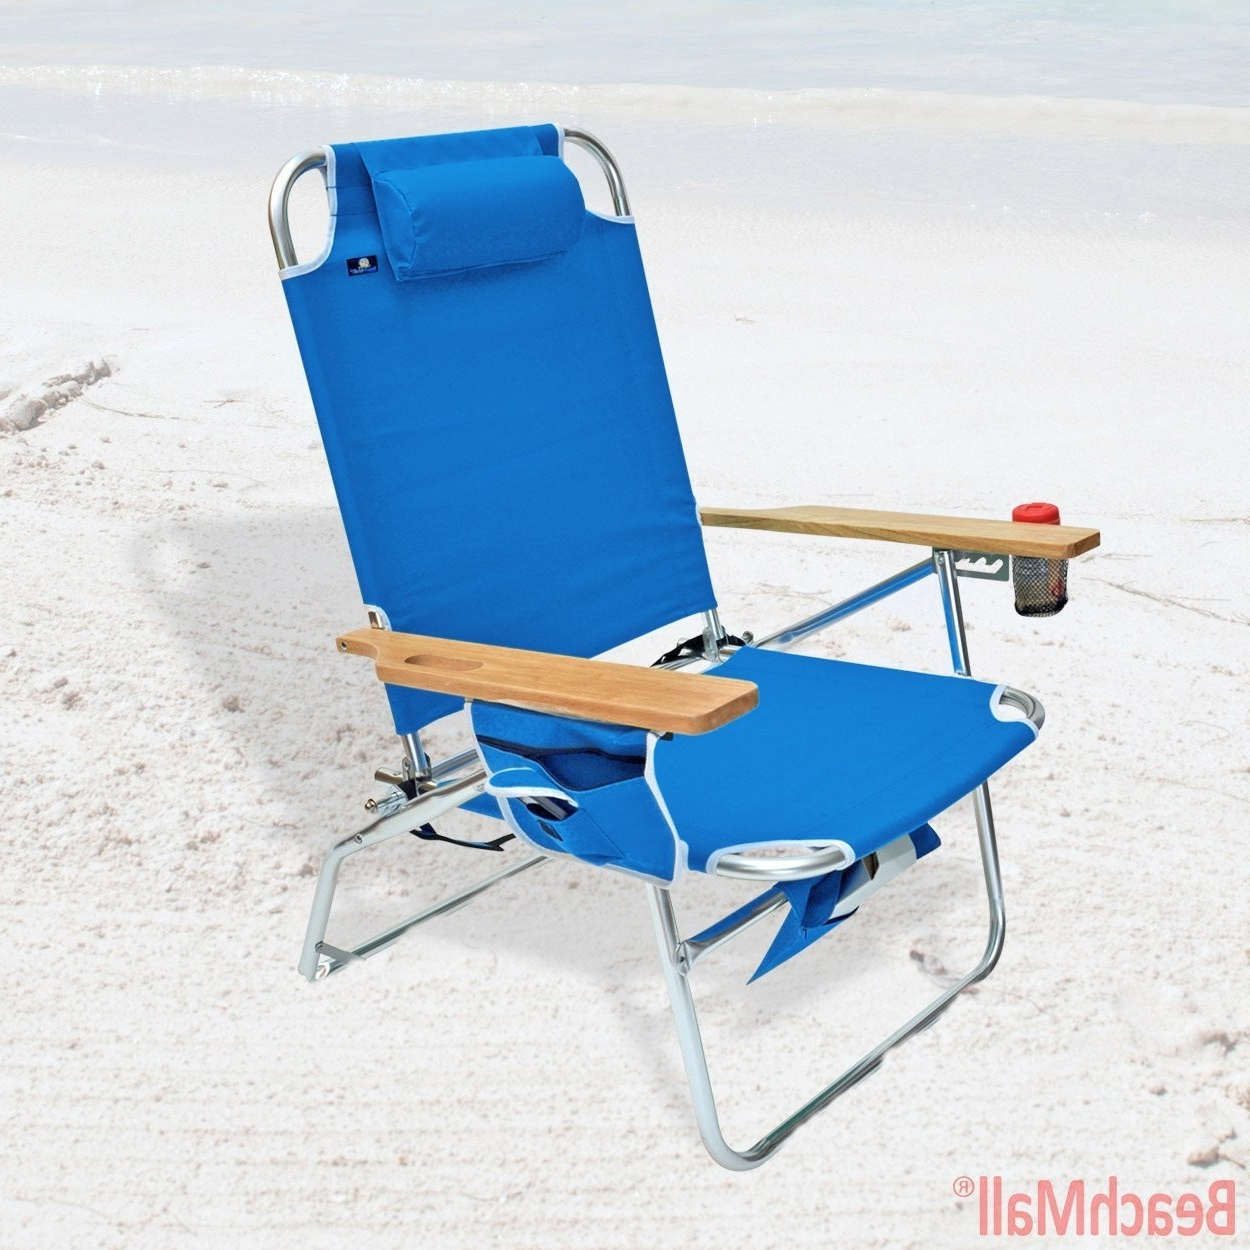 Preferred Heavy Duty Beach Lounge Chairs • Lounge Chairs Ideas Intended For Heavy Duty Chaise Lounge Chairs (View 15 of 15)